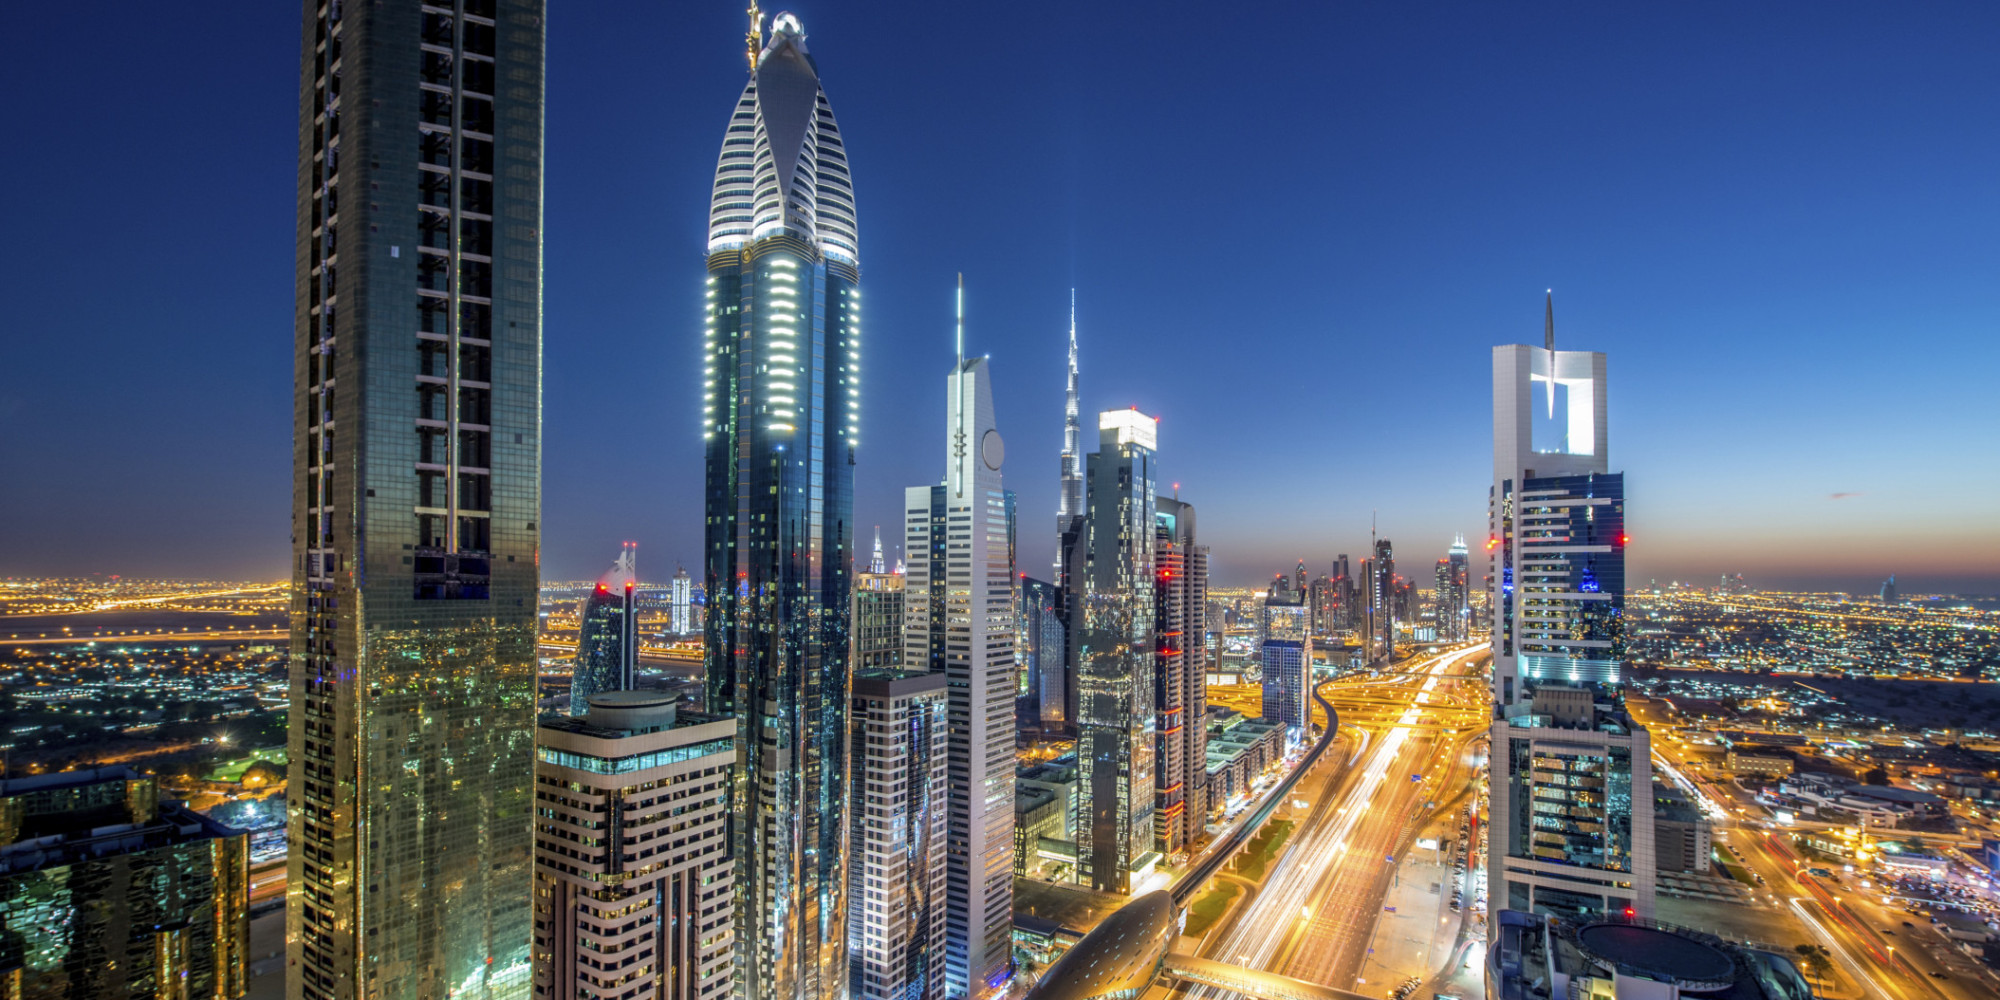 Emirates Wallpaper Hd Dubai Hopes To Become Most Visited City In The World By 2020